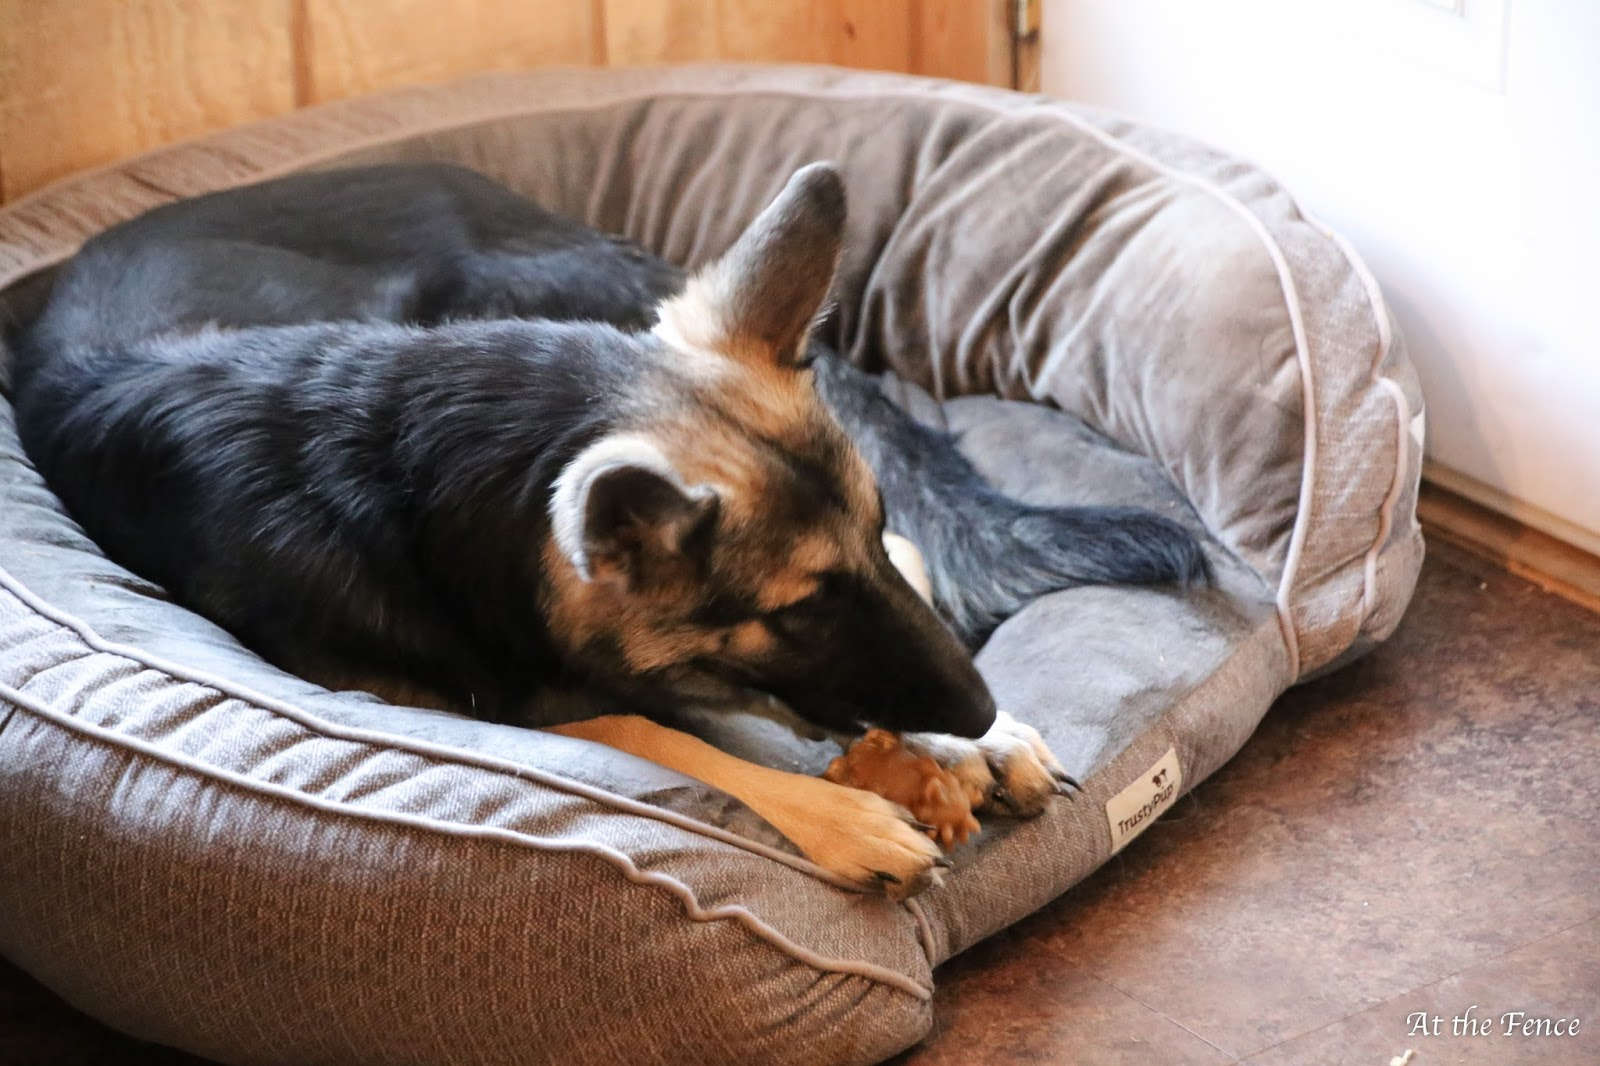 at the fence: trustypup dog bed #2016holidaygiftguide